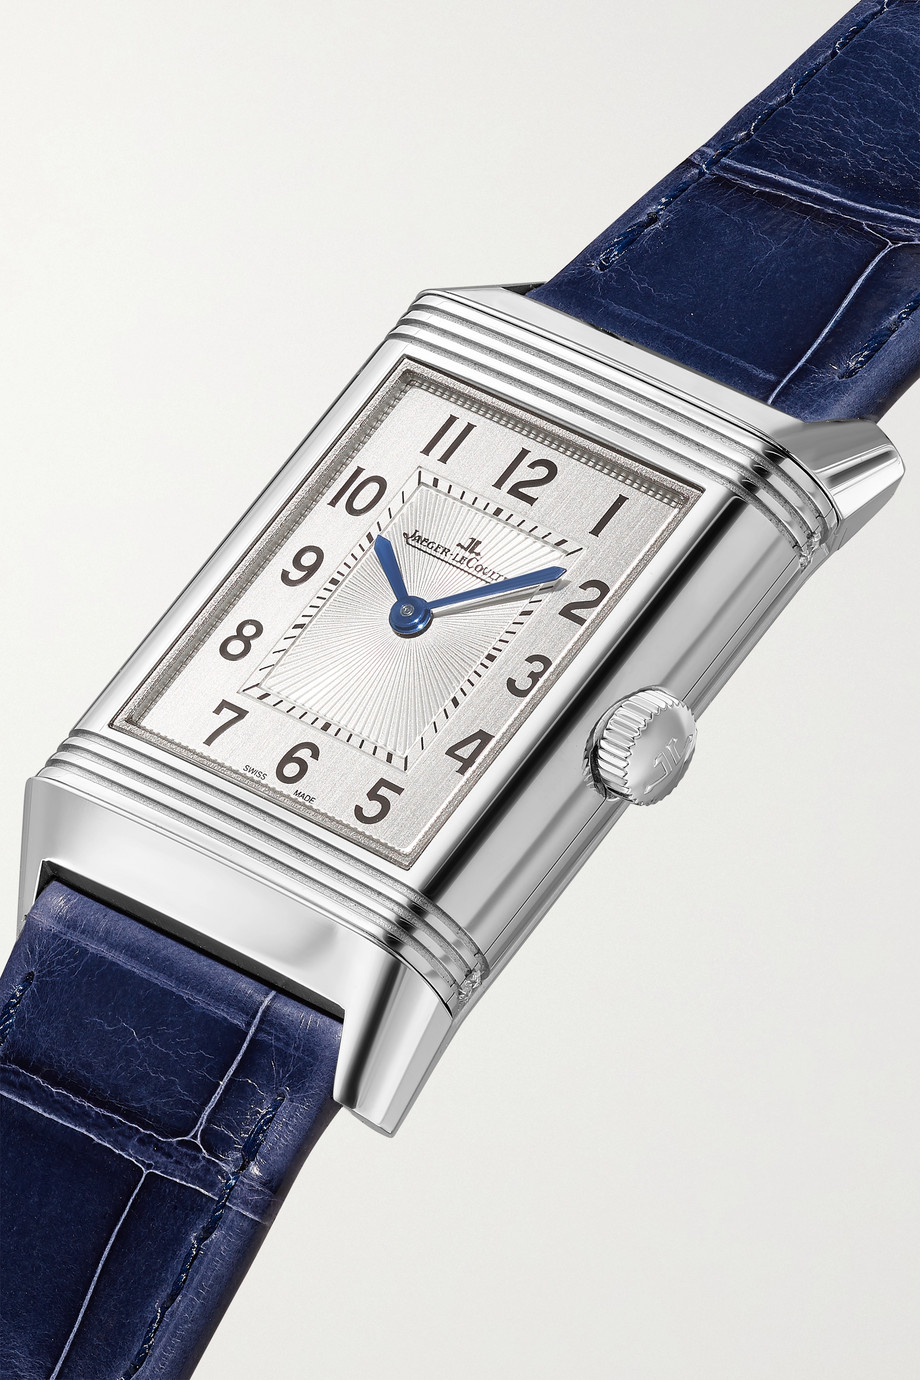 Jaeger-LeCoultre Montre à remontage manuel en acier inoxydable et diamants à bracelet en alligator Reverso Classic Medium Duetto 24 mm